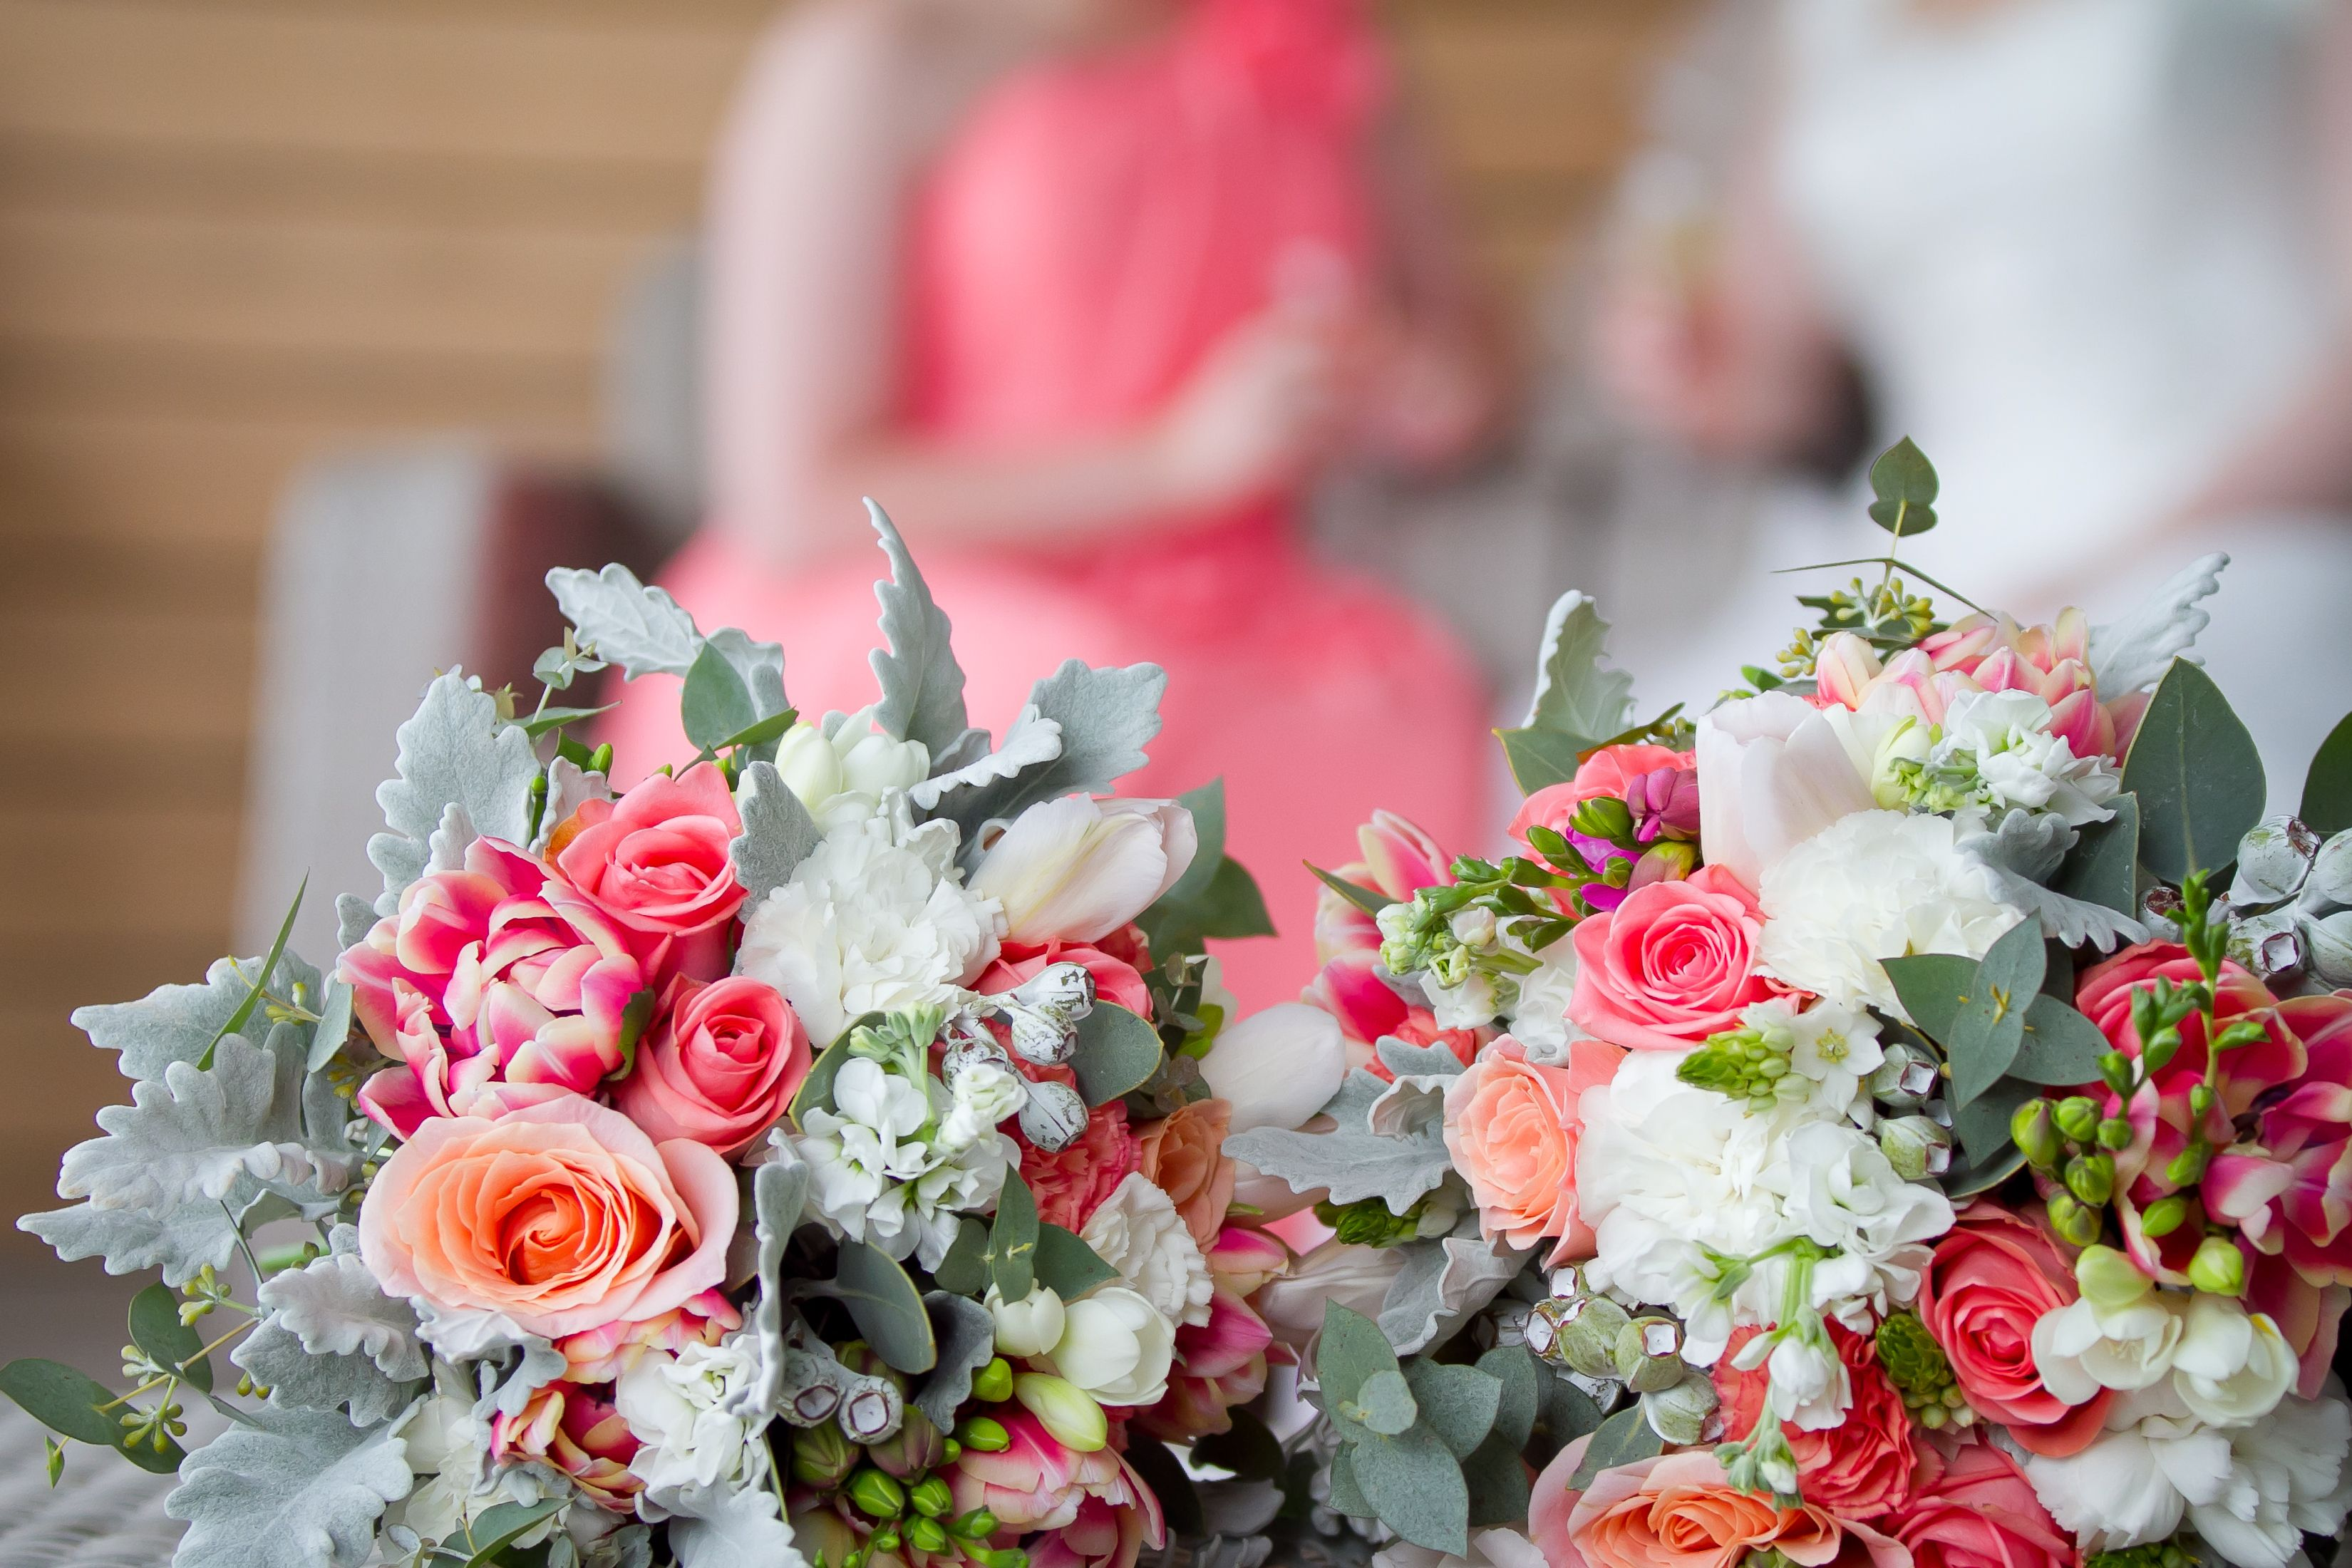 Coral and pink wedding flowers wedding pinterest coral rustic coral wedding coral and pink wedding flowers brisbane wedding florist izmirmasajfo